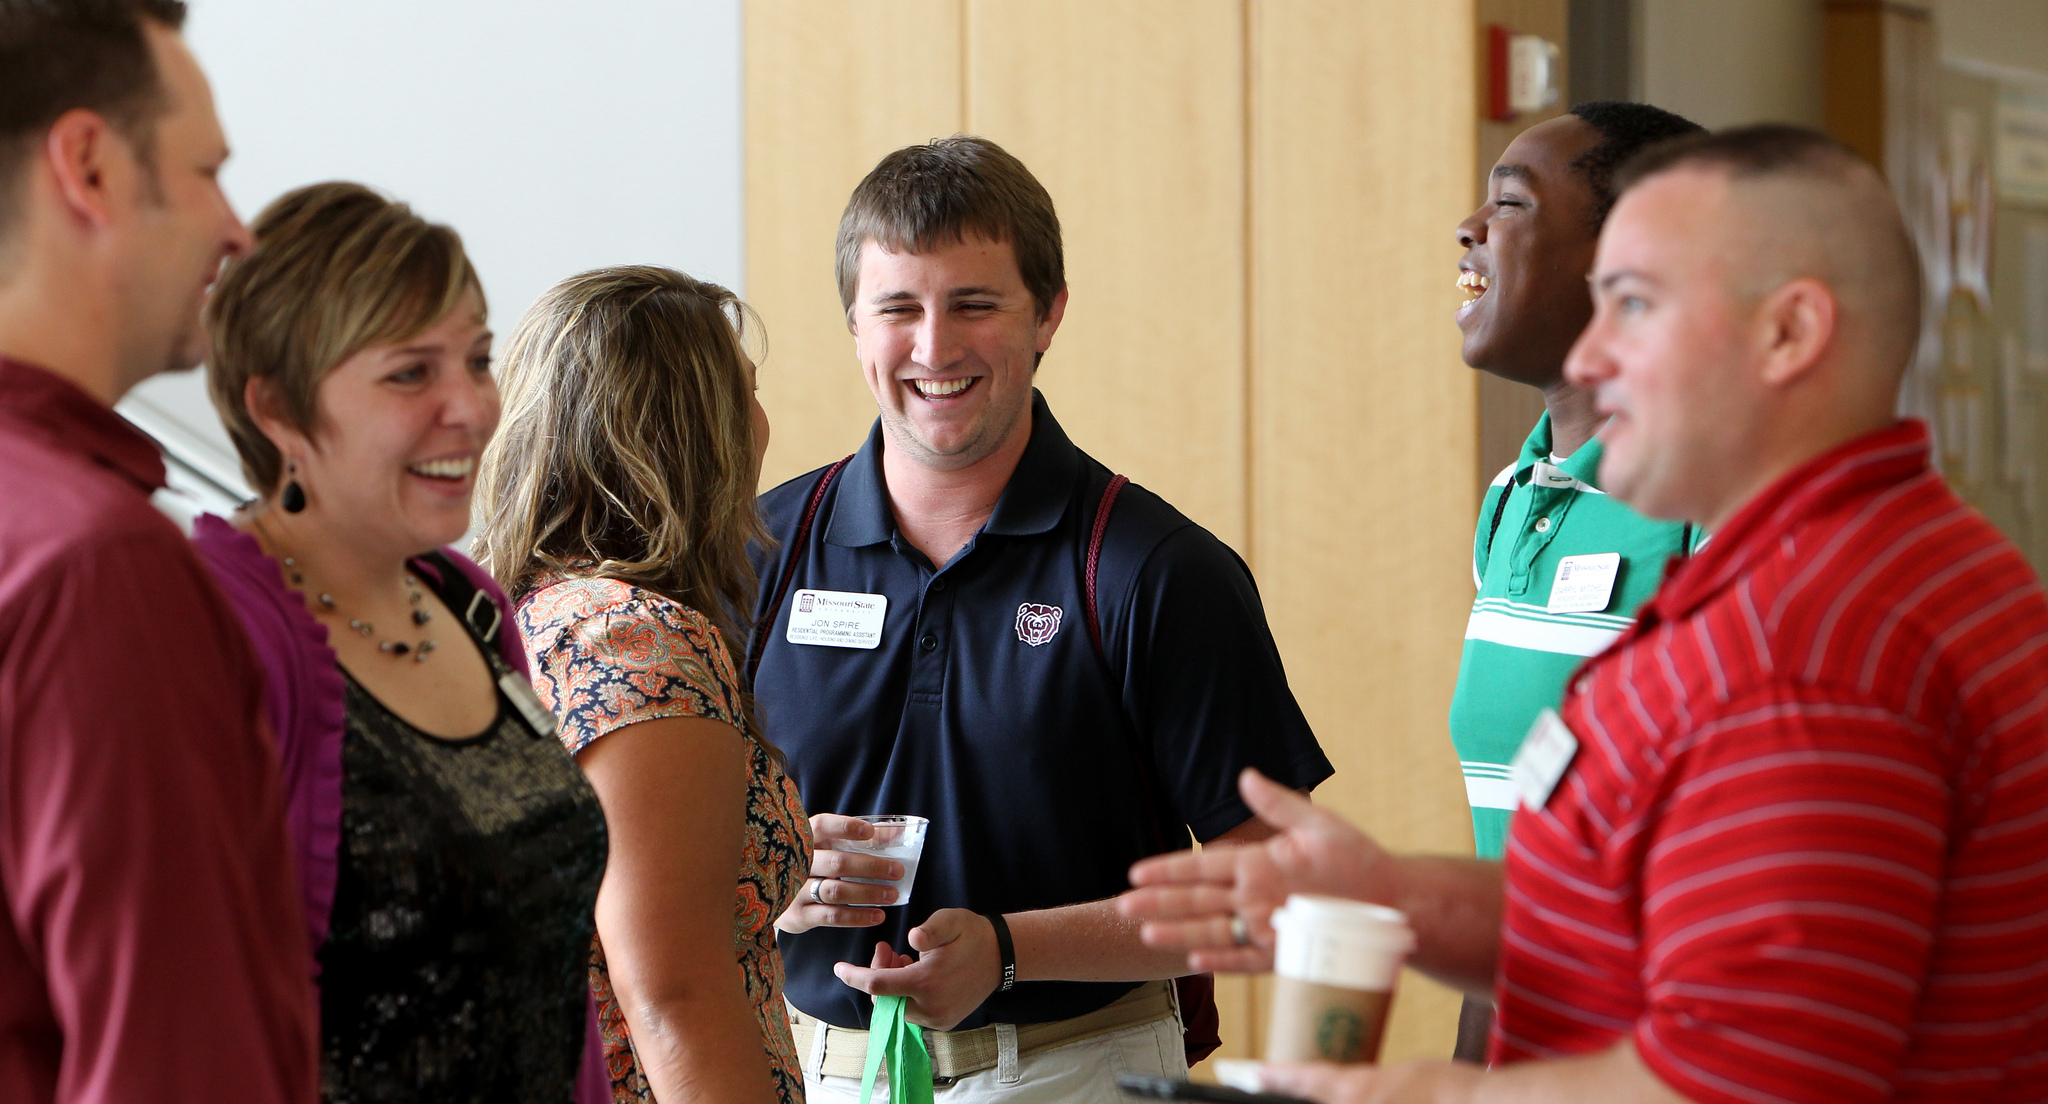 faculty talking with each other in a social setting